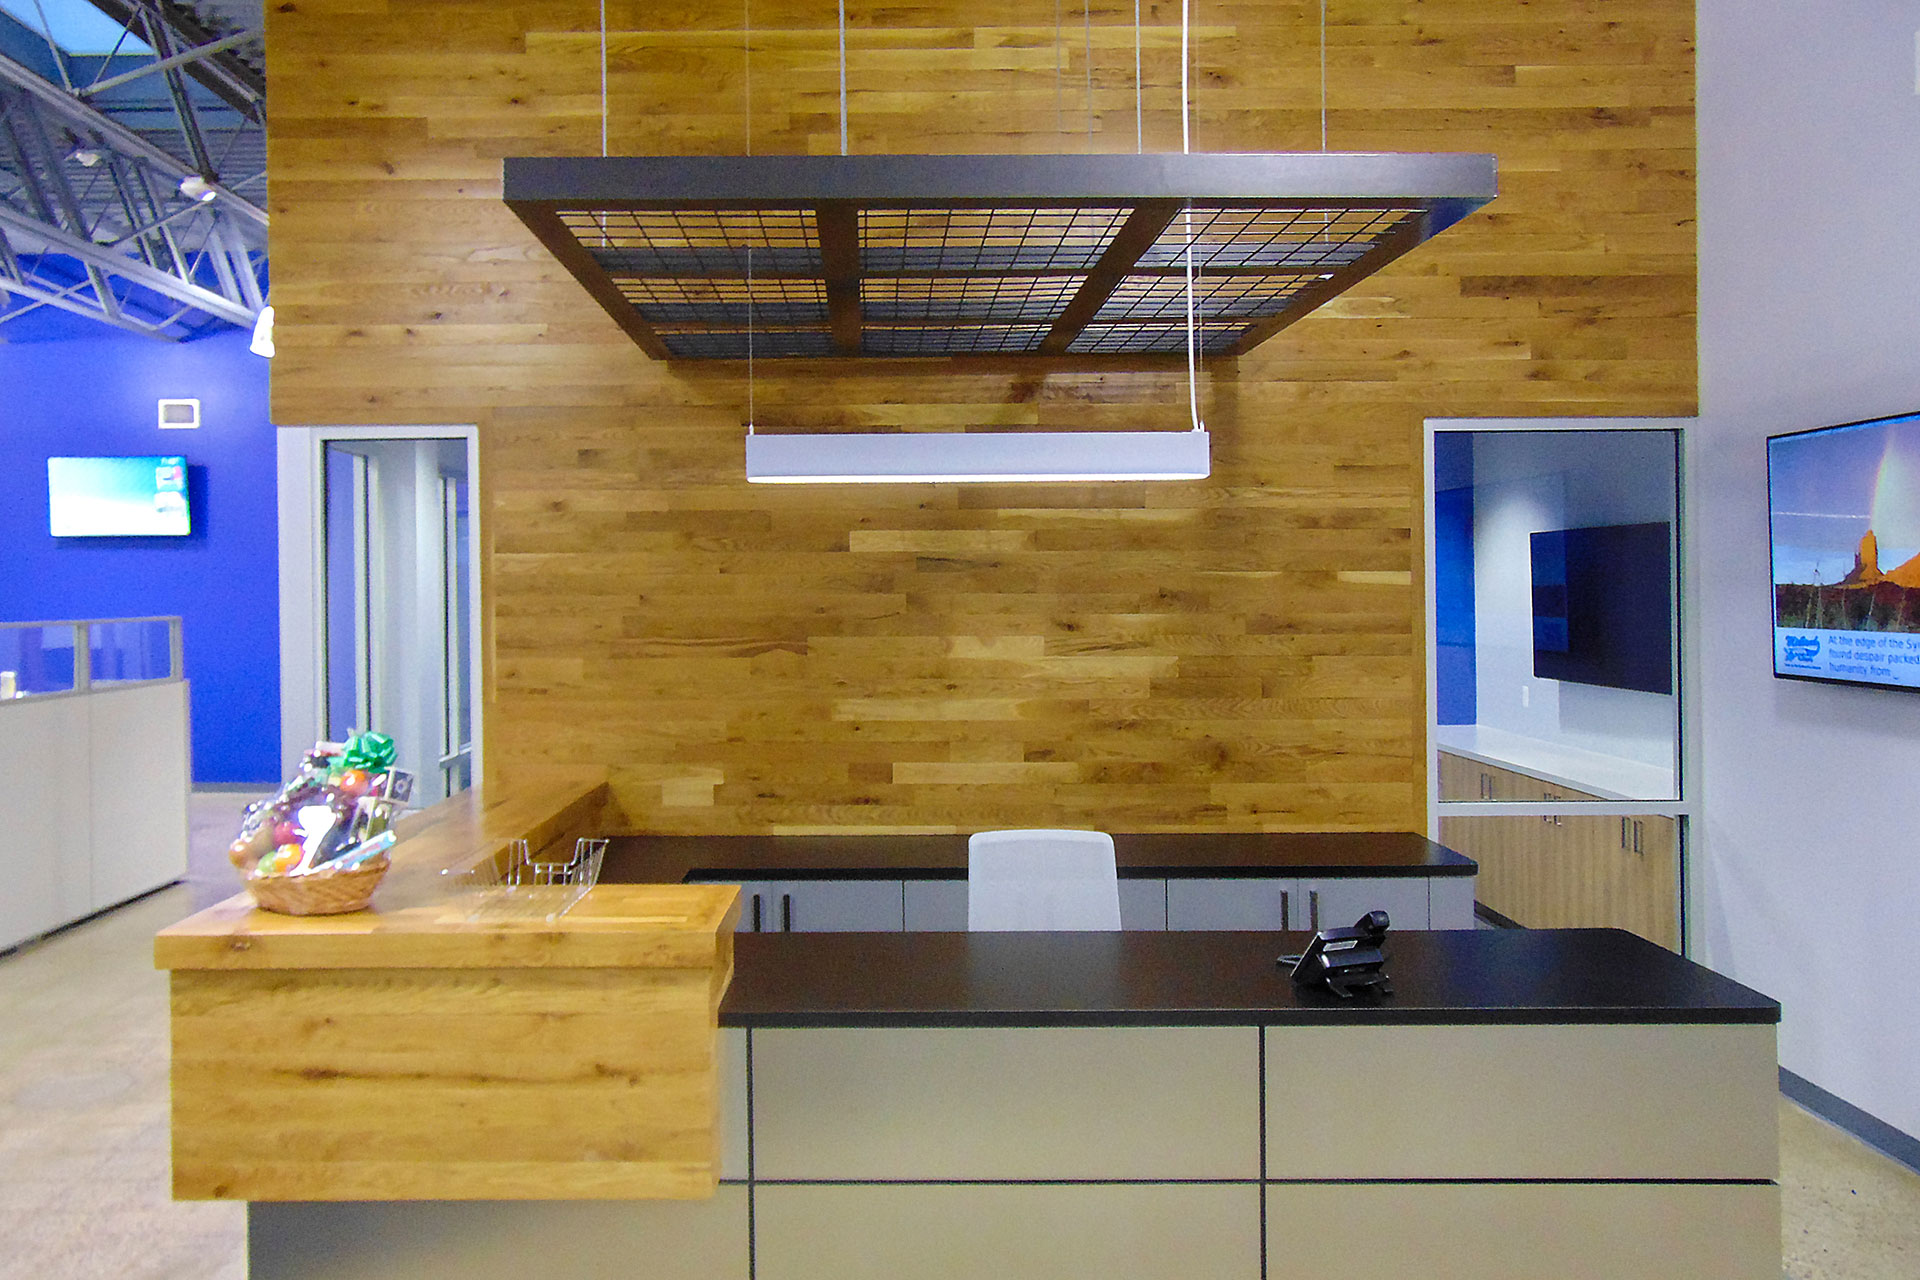 Reception desk with plastic laminate partial-height wall with reveals, and plastic laminate cabinets and counter top, and stained and finished wood transaction top to match the wood/slat feature wall. Fabricated and installed the metal hanging ceiling feature piece.